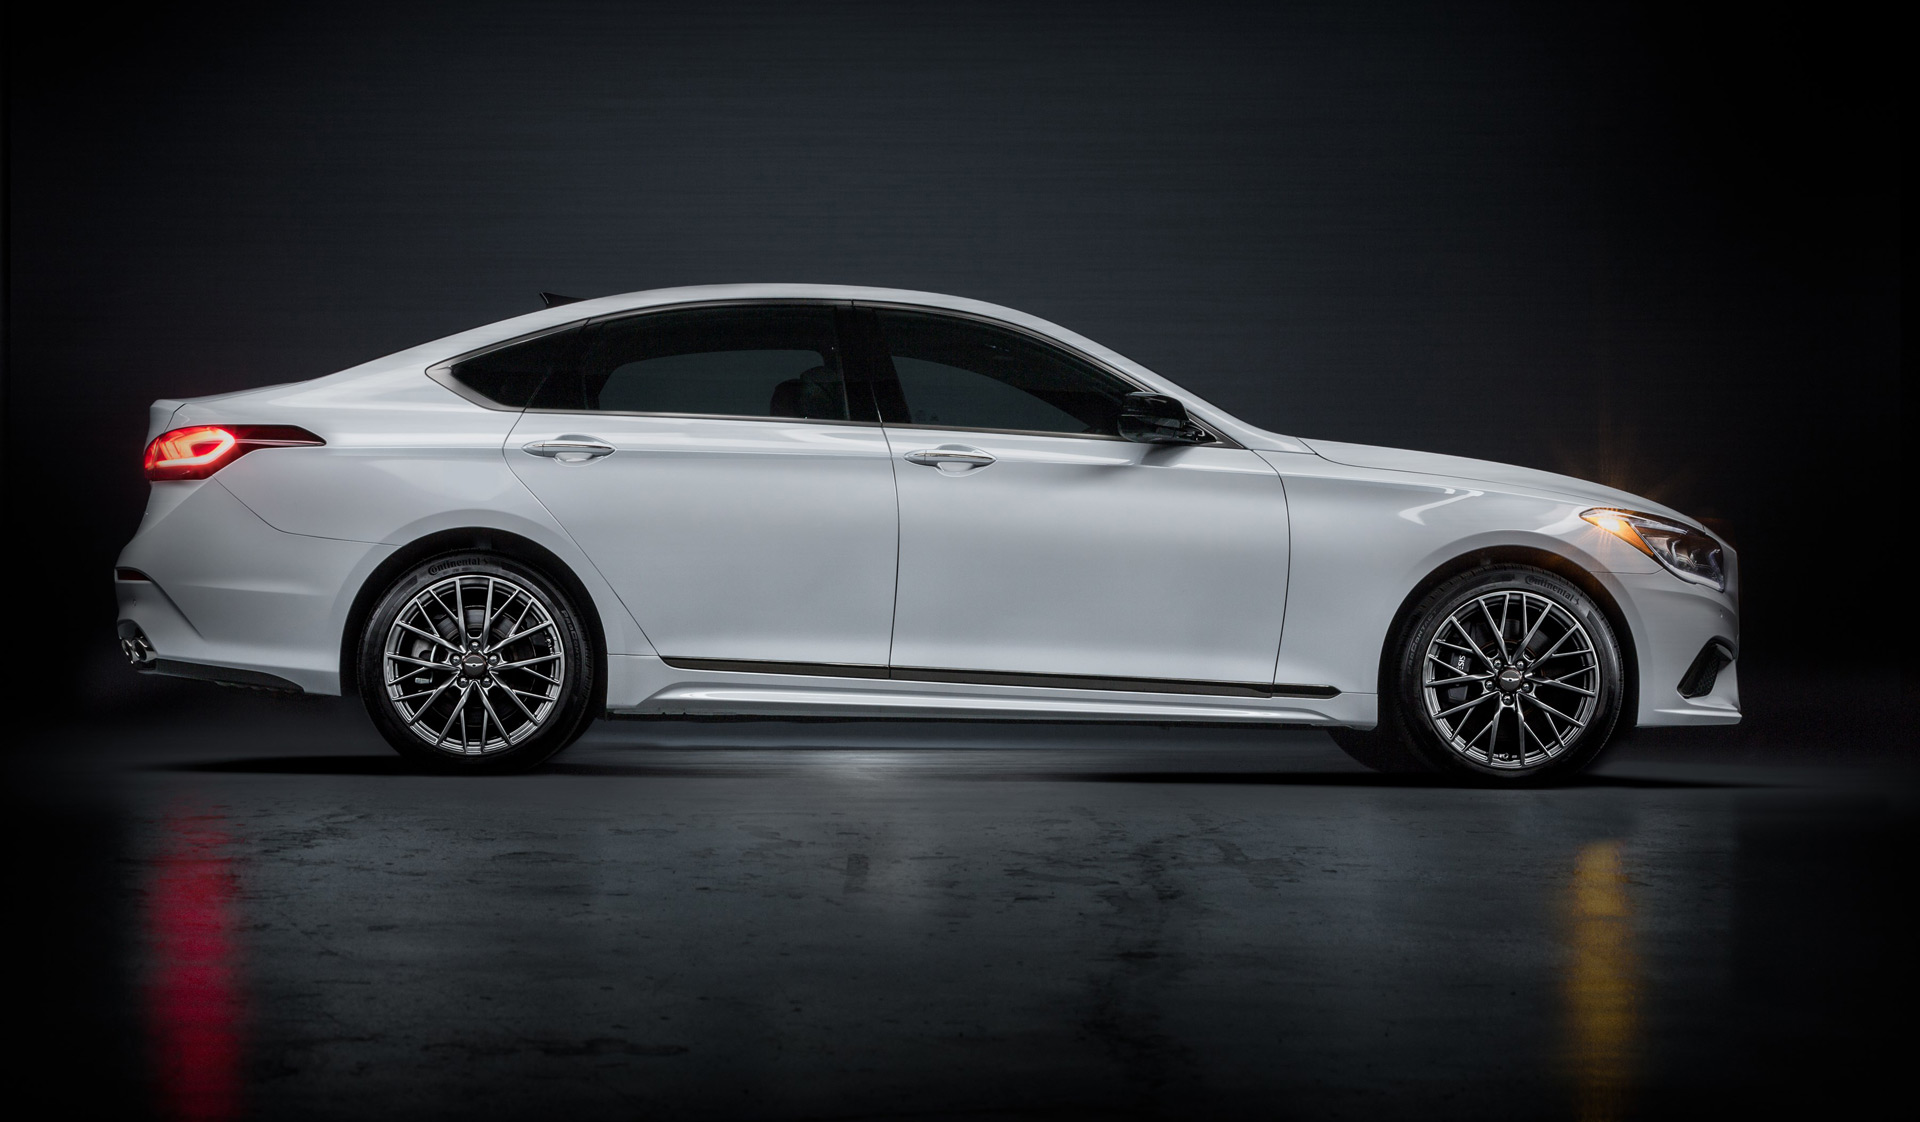 Taxi Service Los Angeles >> 2018 Genesis G80 priced from $42,725, G80 Sport from $56,225